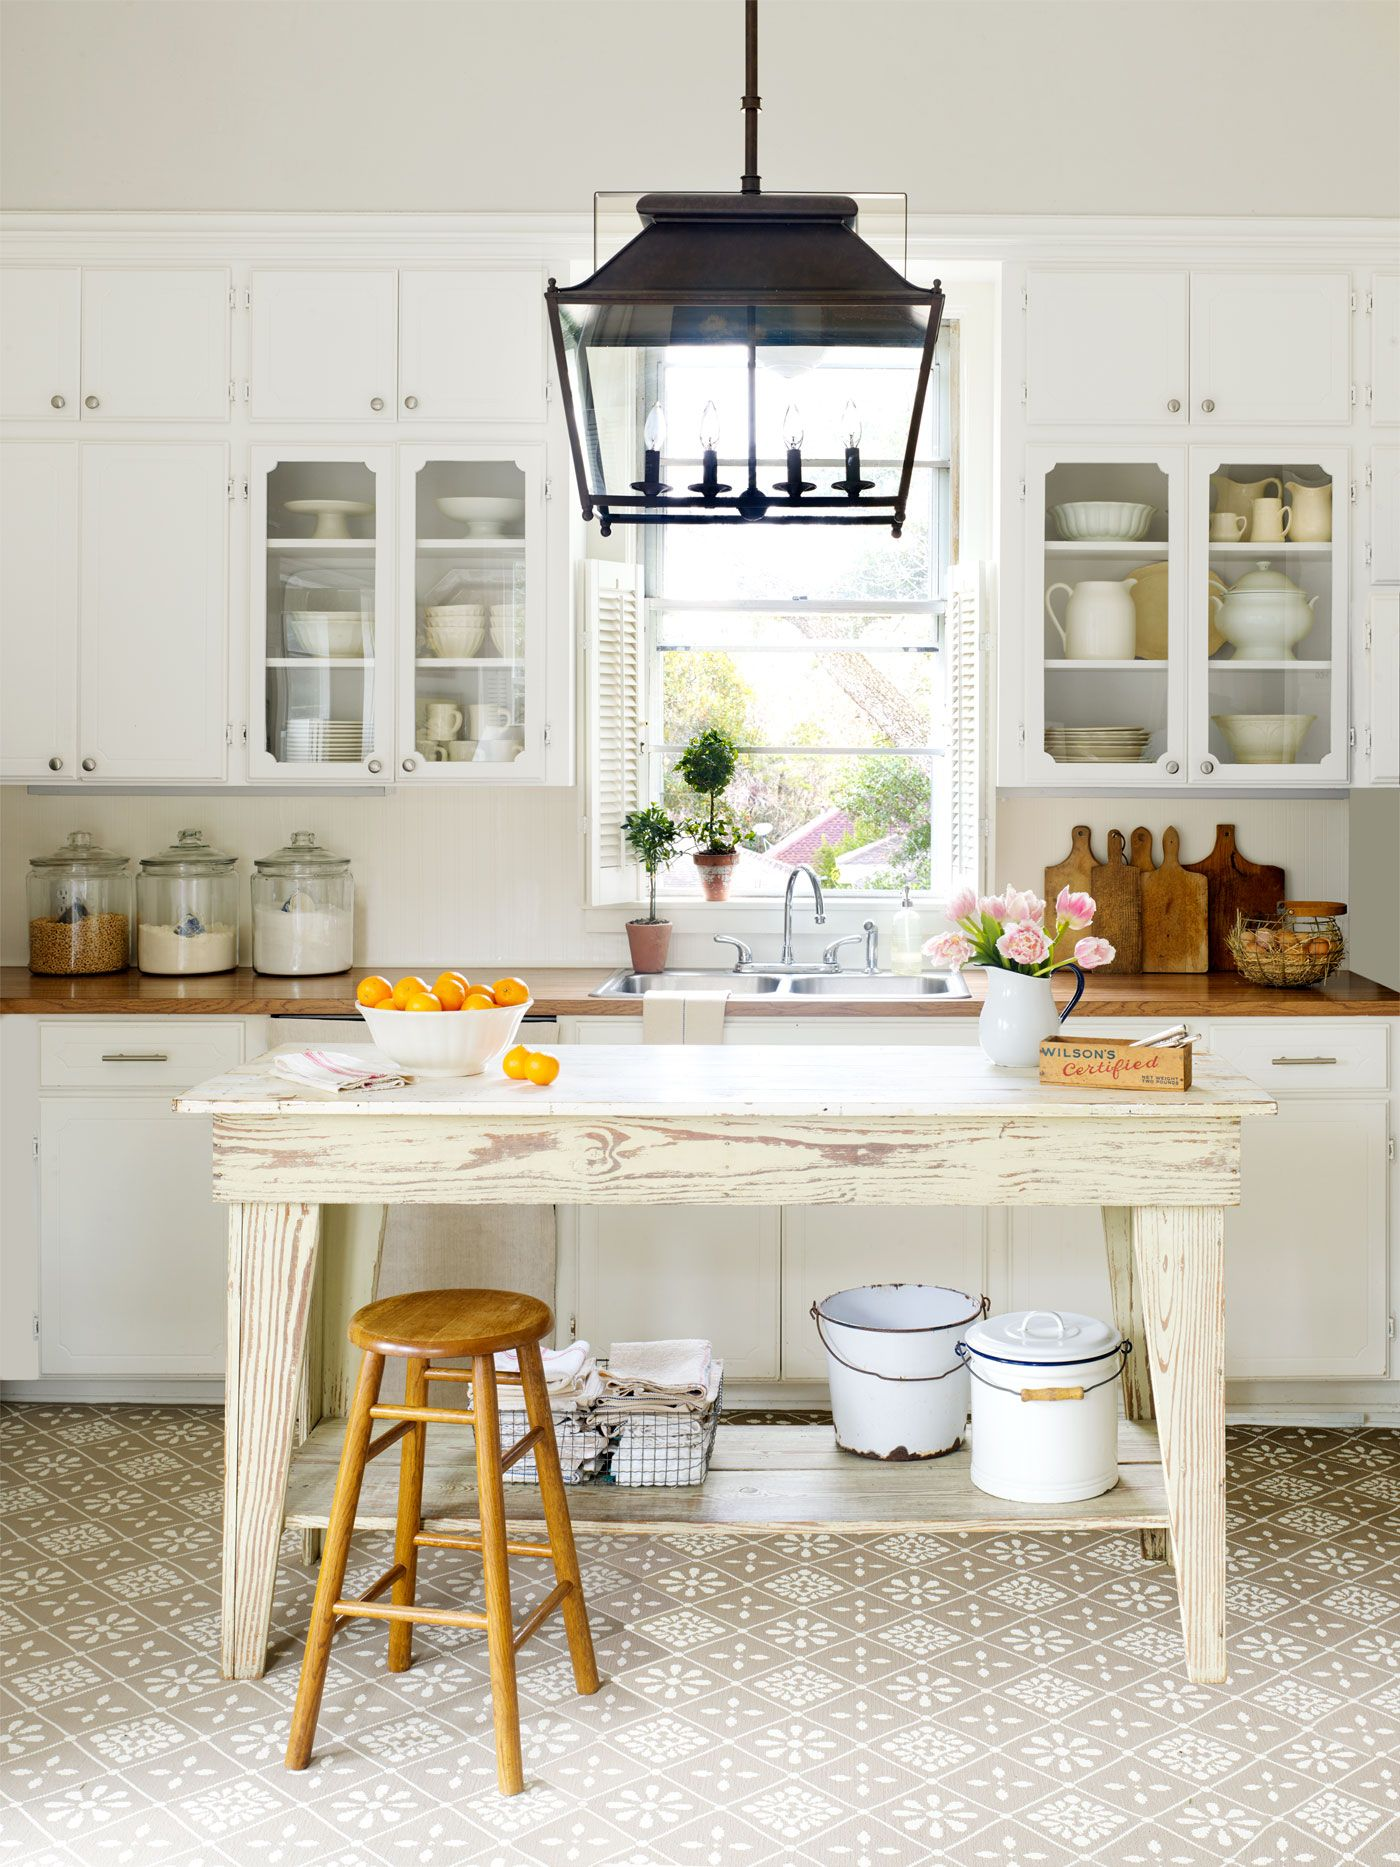 To camouflage the existing laminate flooring, Christi brought in an easy-to-clean, indoor/outdoor rug that stretches the expanse of the kitchen. Bonus: The quilt-like motif adds farmhouse character in keeping with the rest of the historic home.